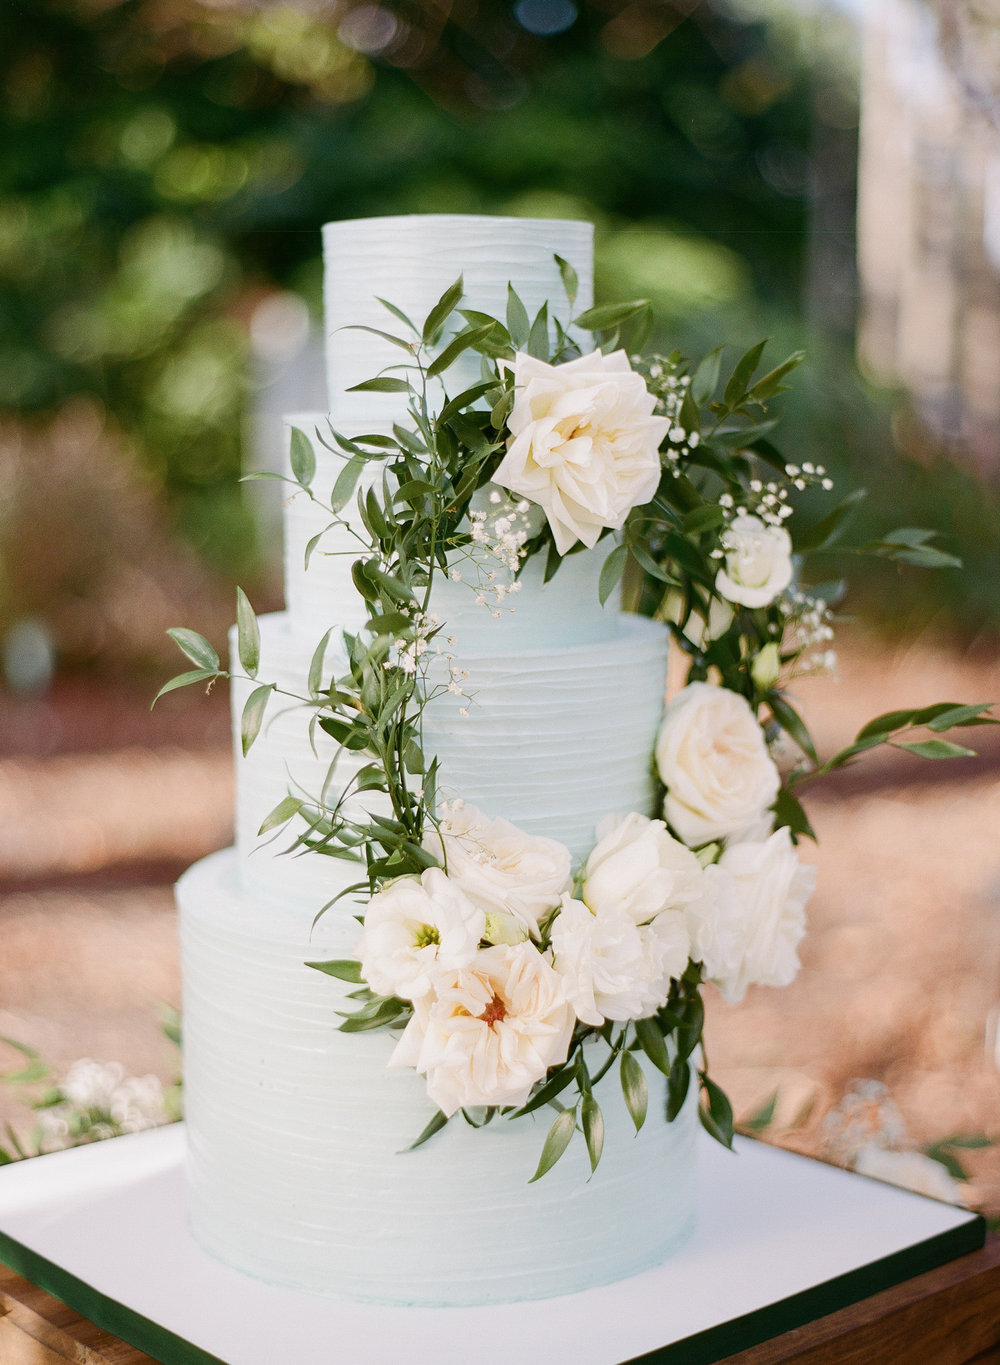 Blue Wedding Cake with Real Flower